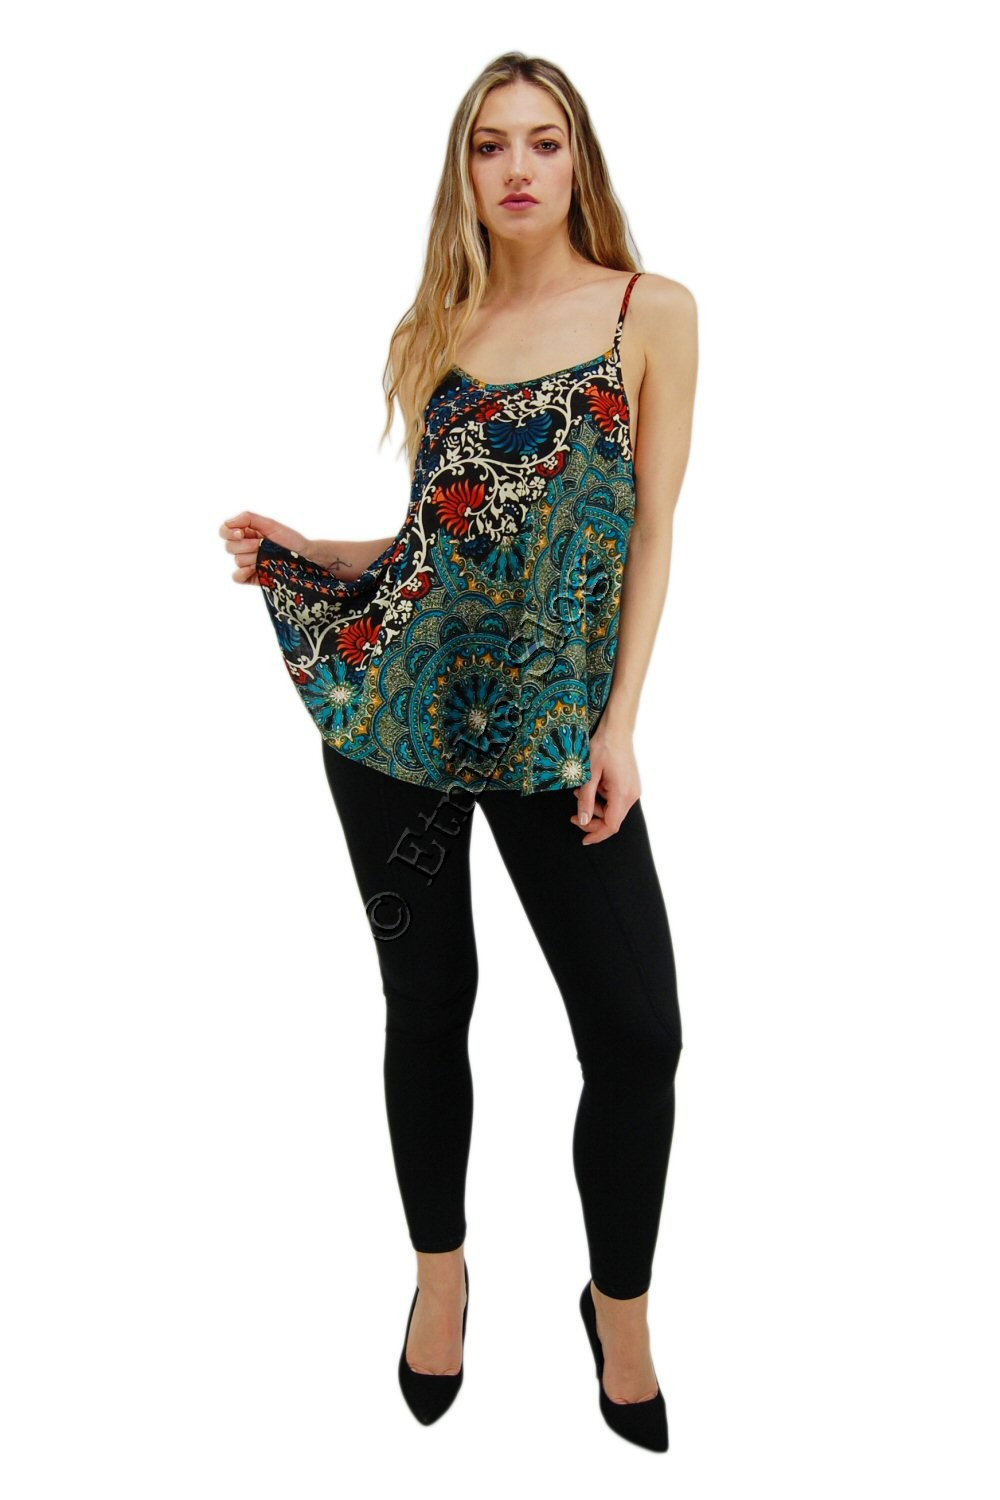 JERSEY TANK TOP AND T-SHIRTS AB-BCT07CB - Oriente Import S.r.l.